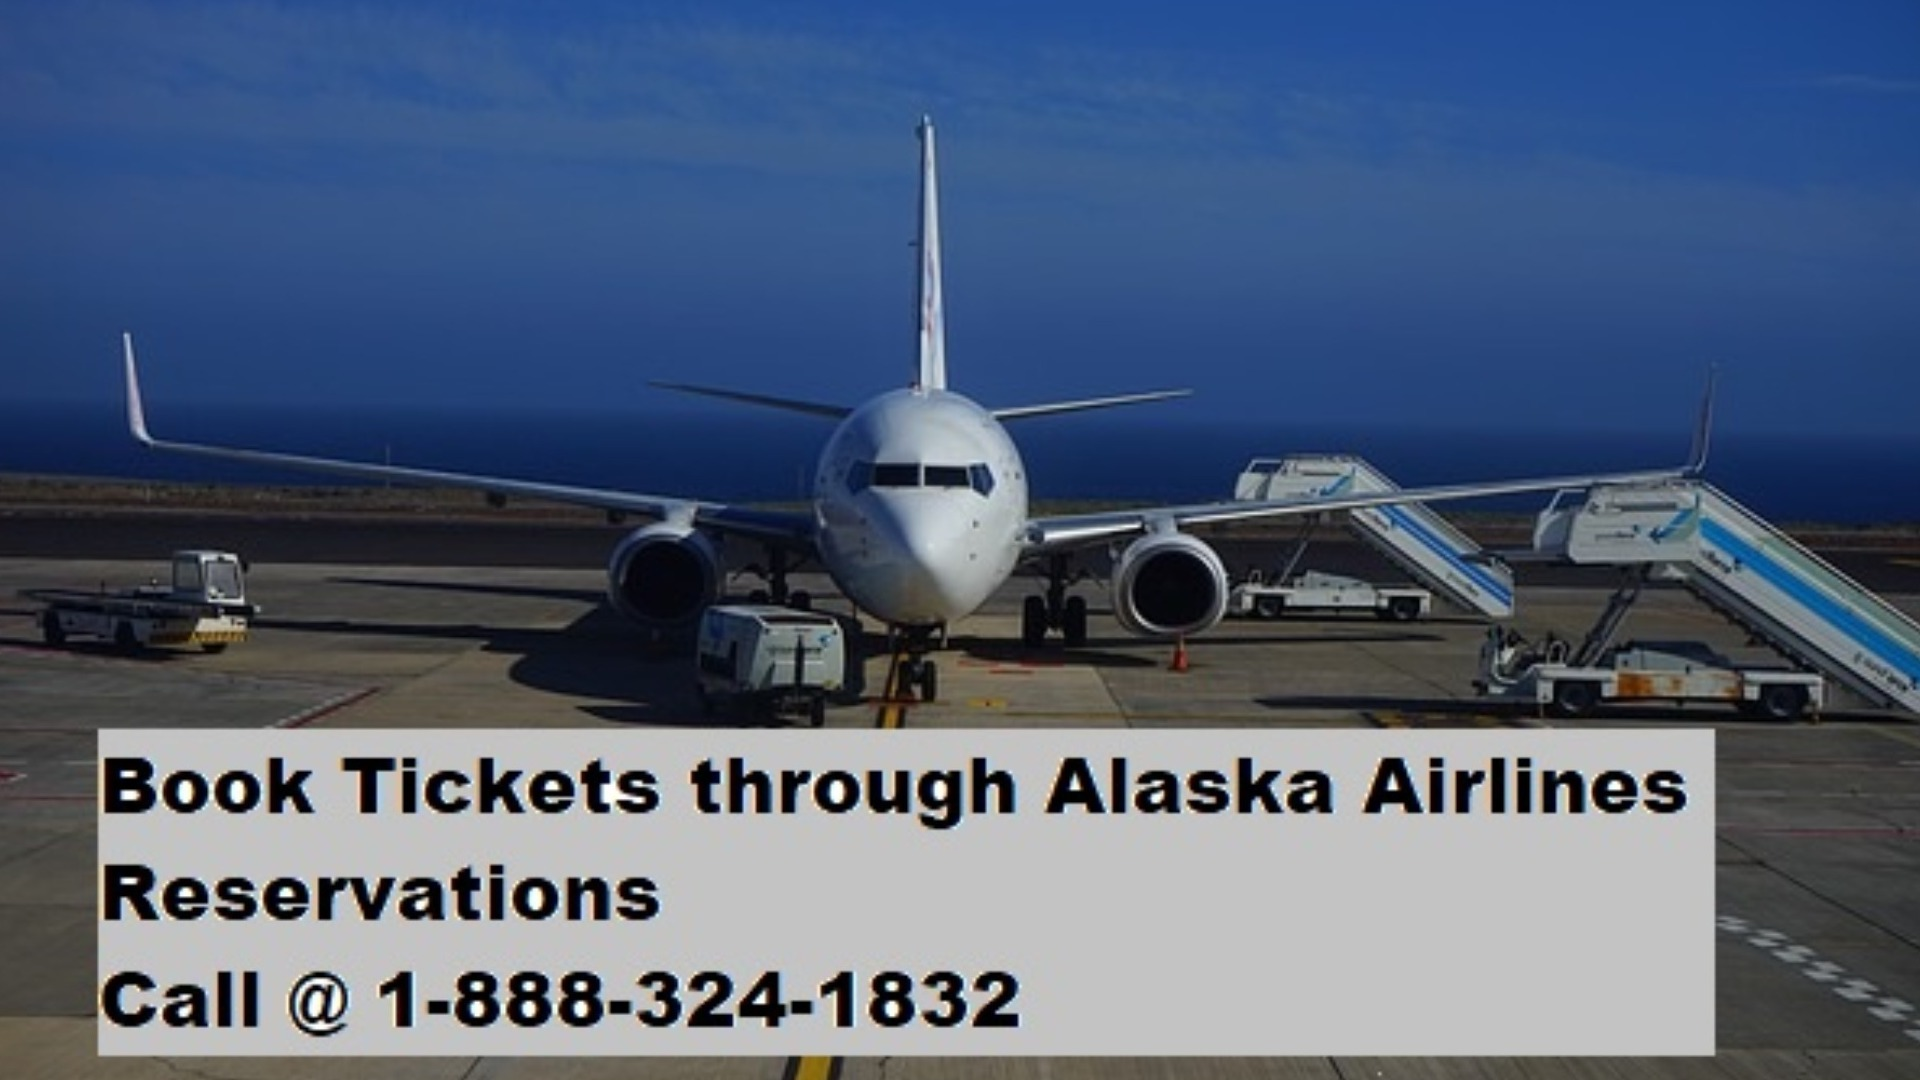 Guide To Book Tickets Through Alaska Airlines Reservations